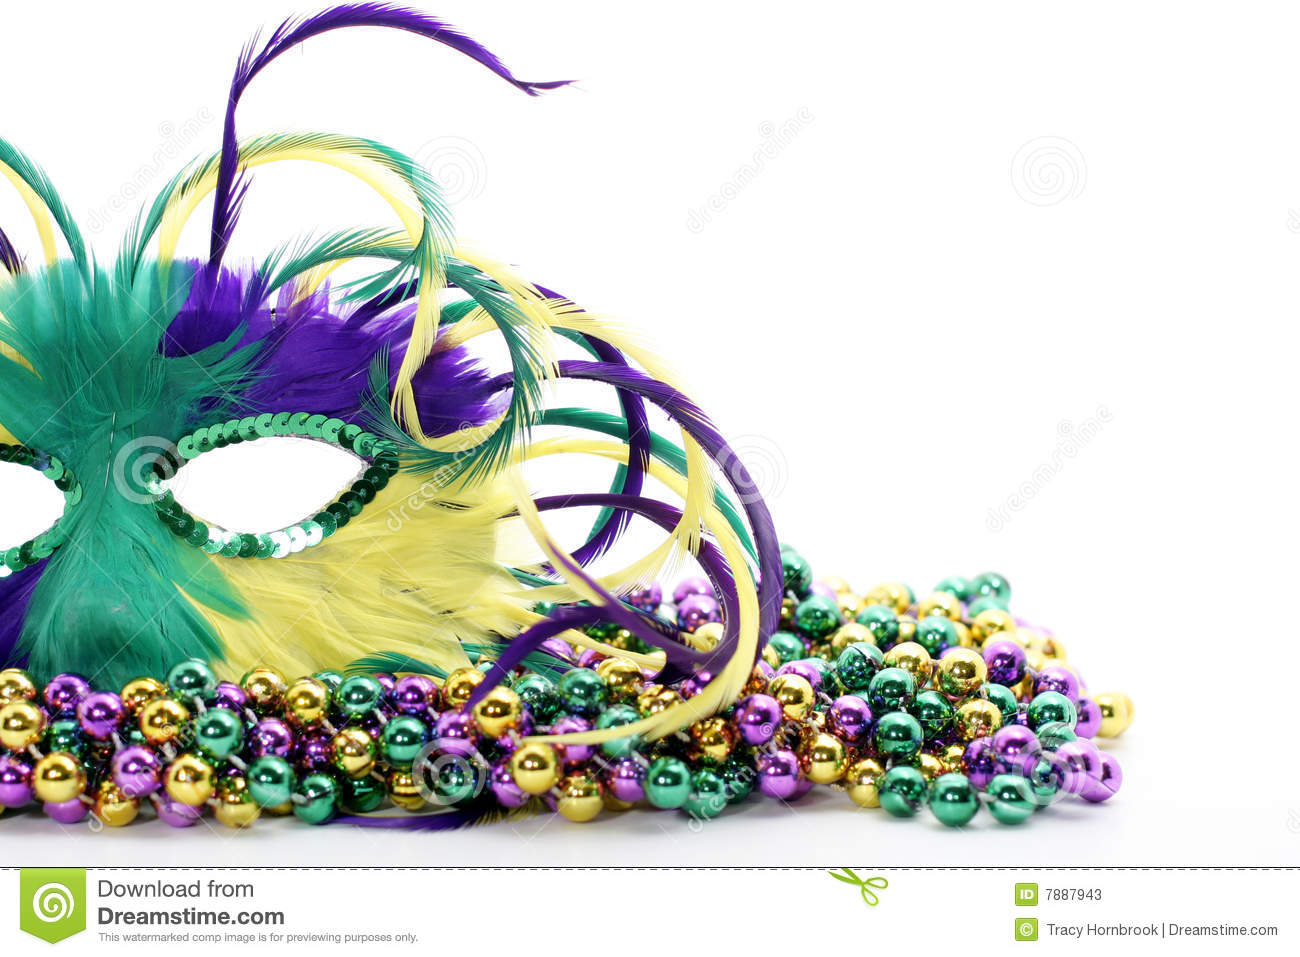 photo party sequin gras masquerade depositphotos gold mardi stock satin beads carnival purple mask